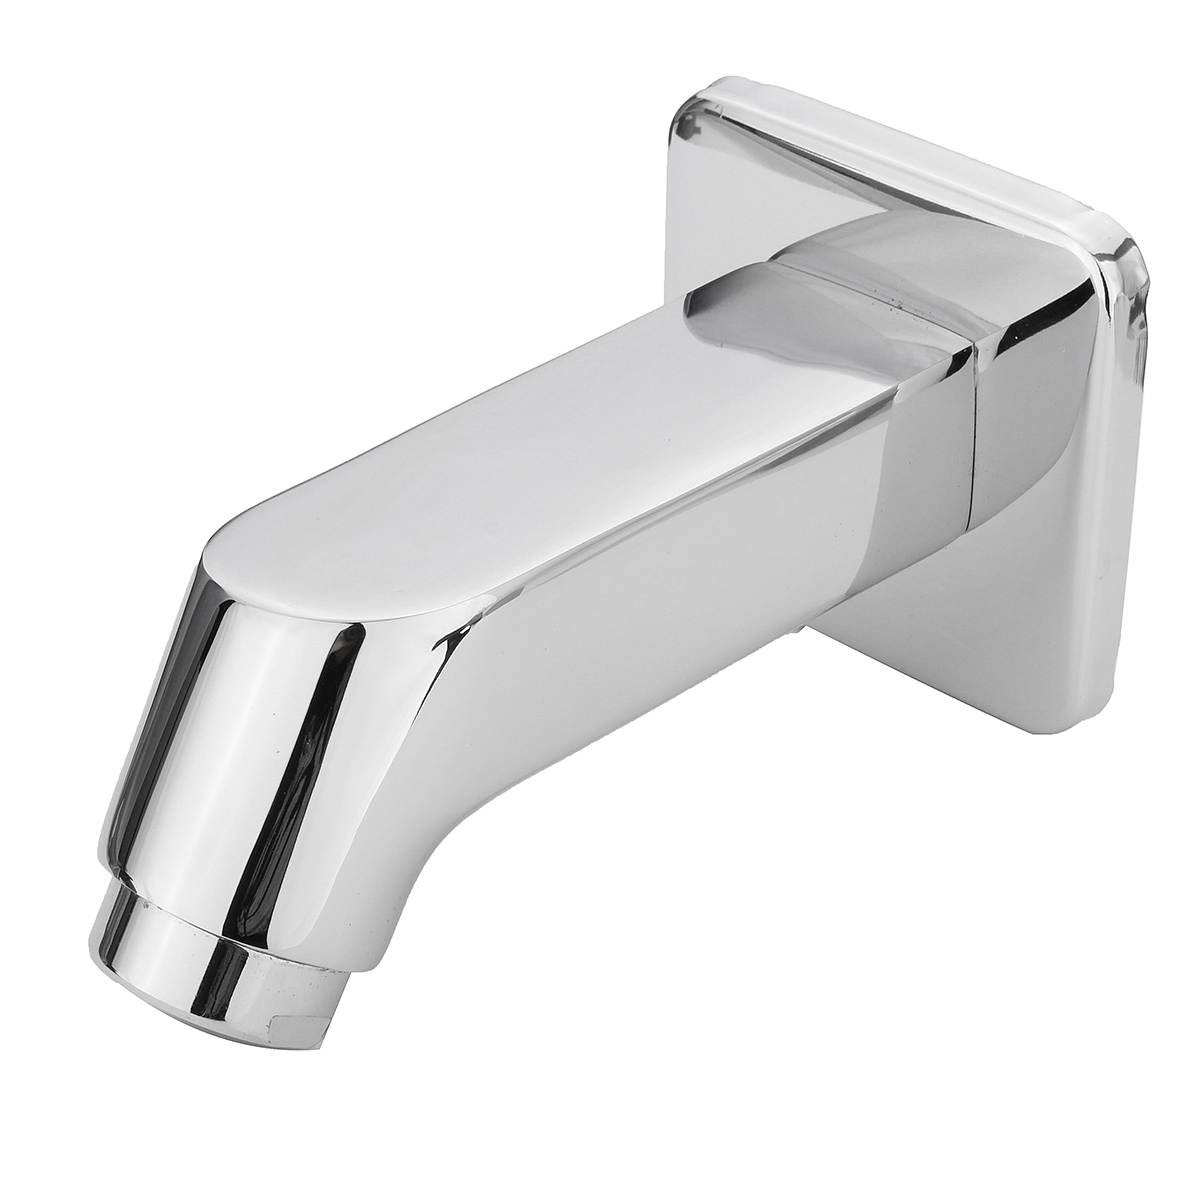 Modern Hot Cold Water Mixer Tap Wall Mounted Bathroom Kitchen Basin Sink Spout Faucet